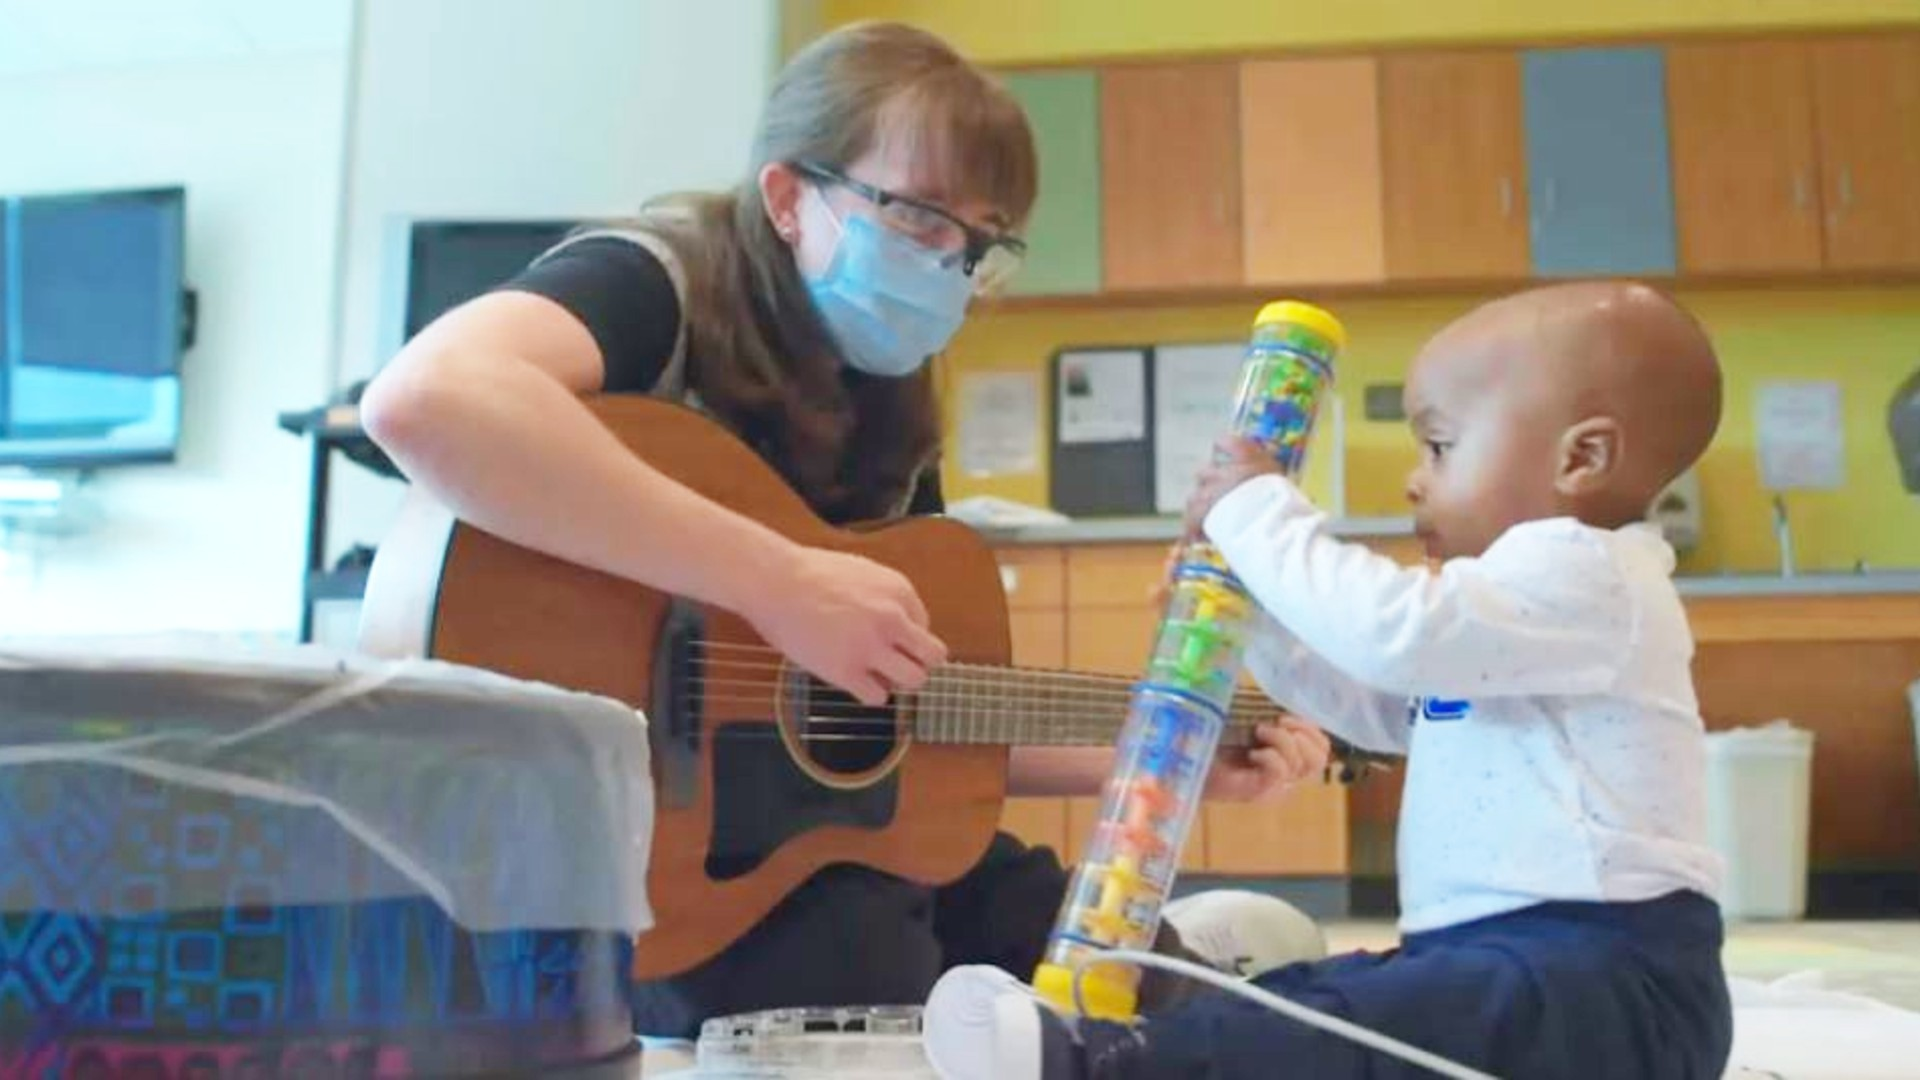 A music therapist plays guitar with a young Levine Children's Hospital patient.